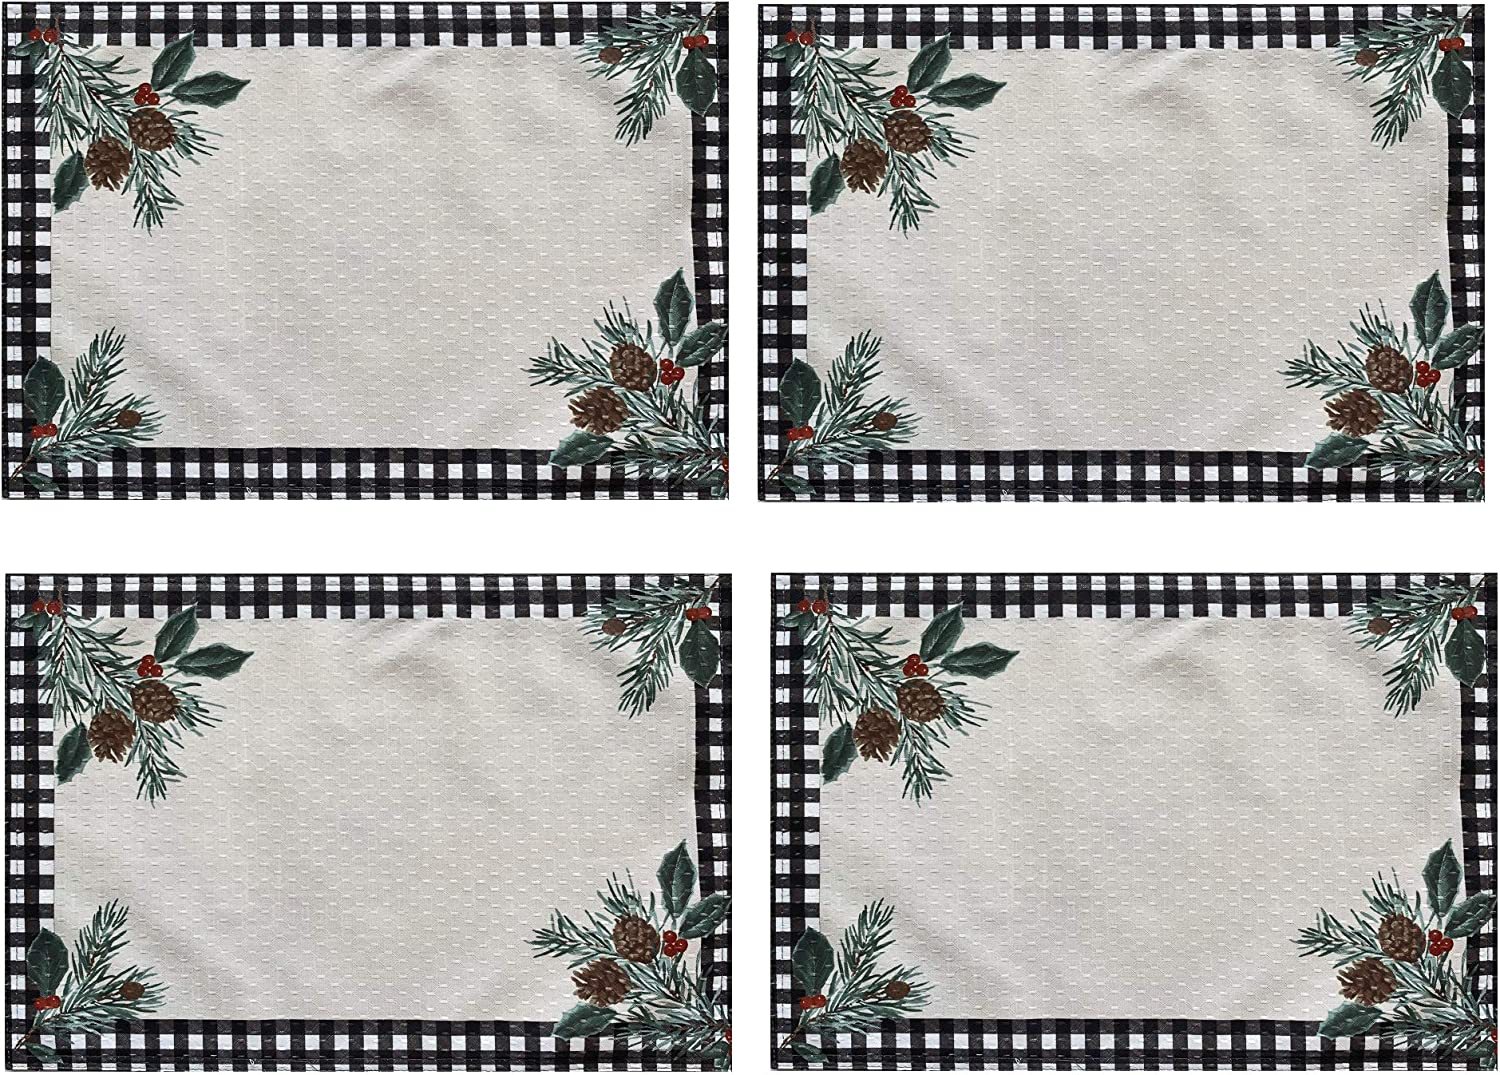 Lintex Festive Berry Black Plaid Country Rustic Bordered Christmas Placemats Cottage Check and Holly Bordered Xmas and Holiday Print Easy Care Fabric Placemats Set of 4 Bordered Placemat